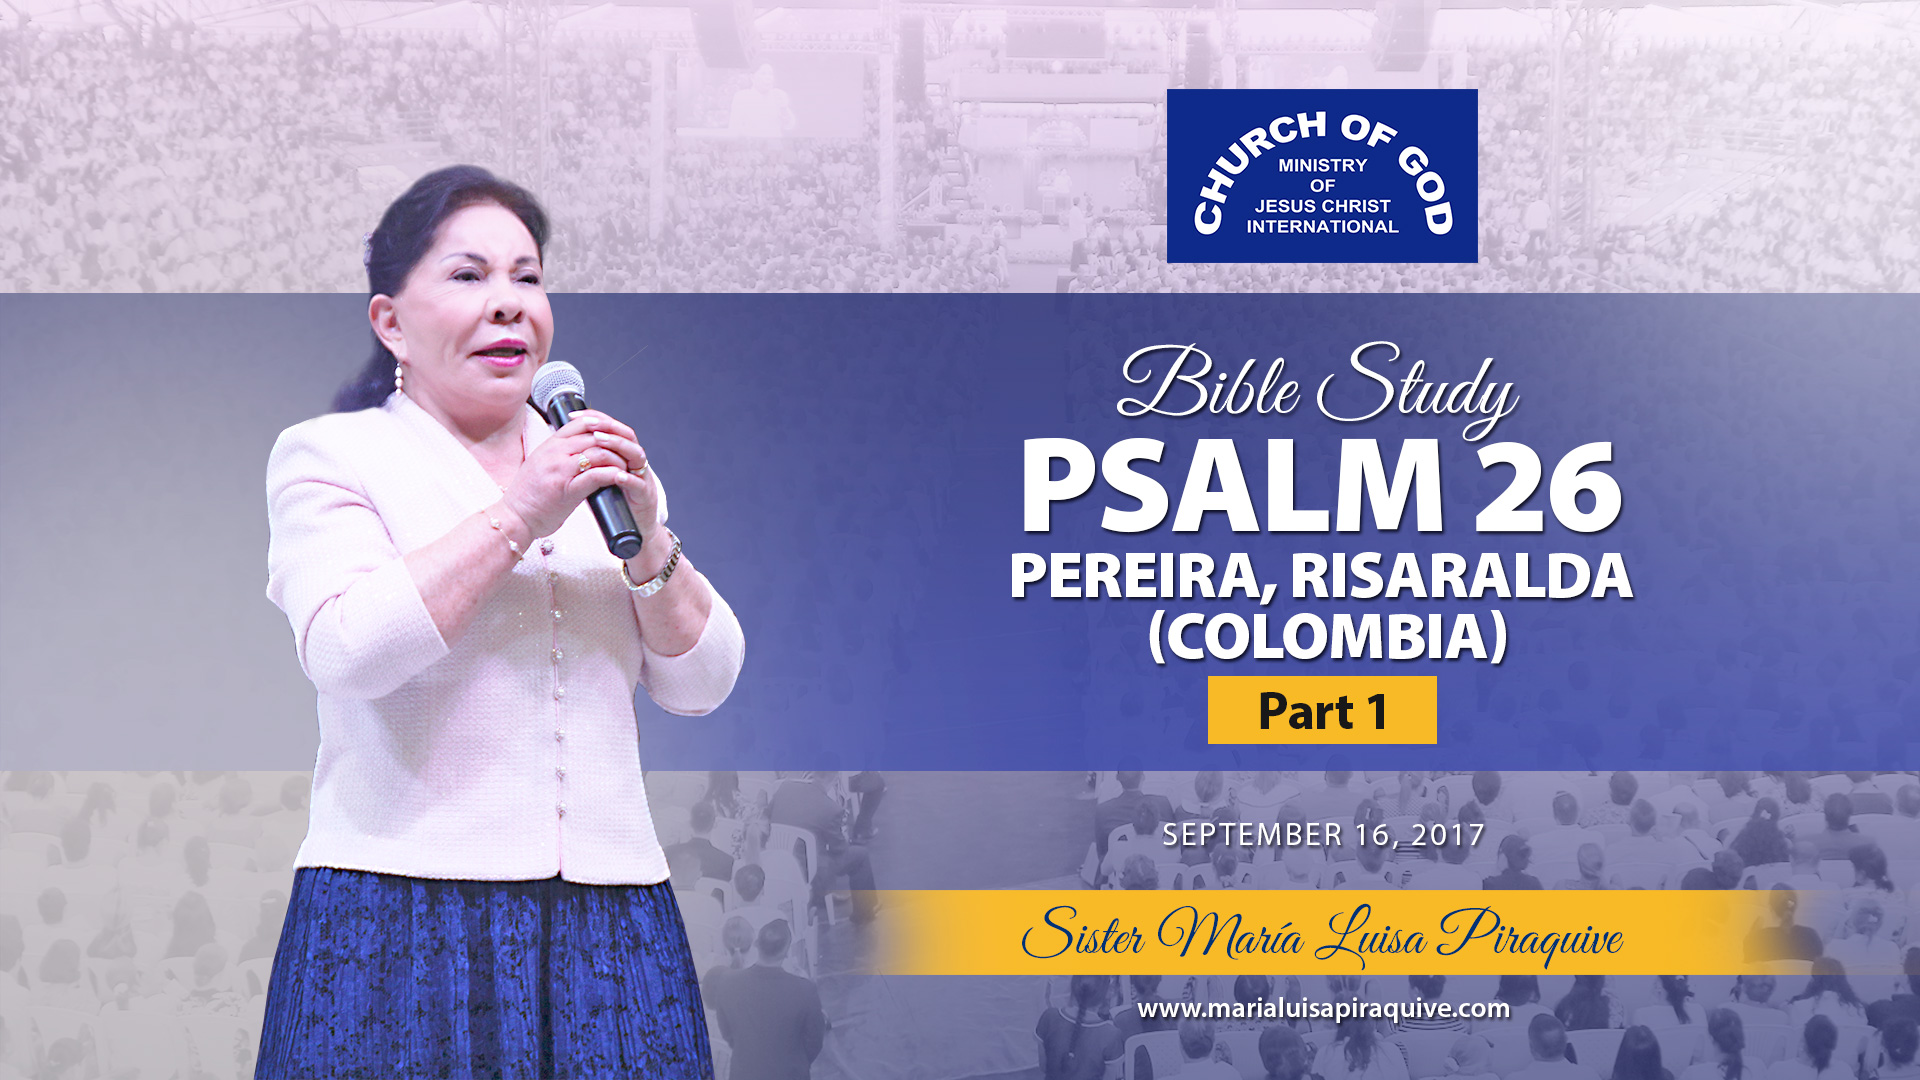 Bible Study: Psalm 26, Pereira, Colombia (Part 1)